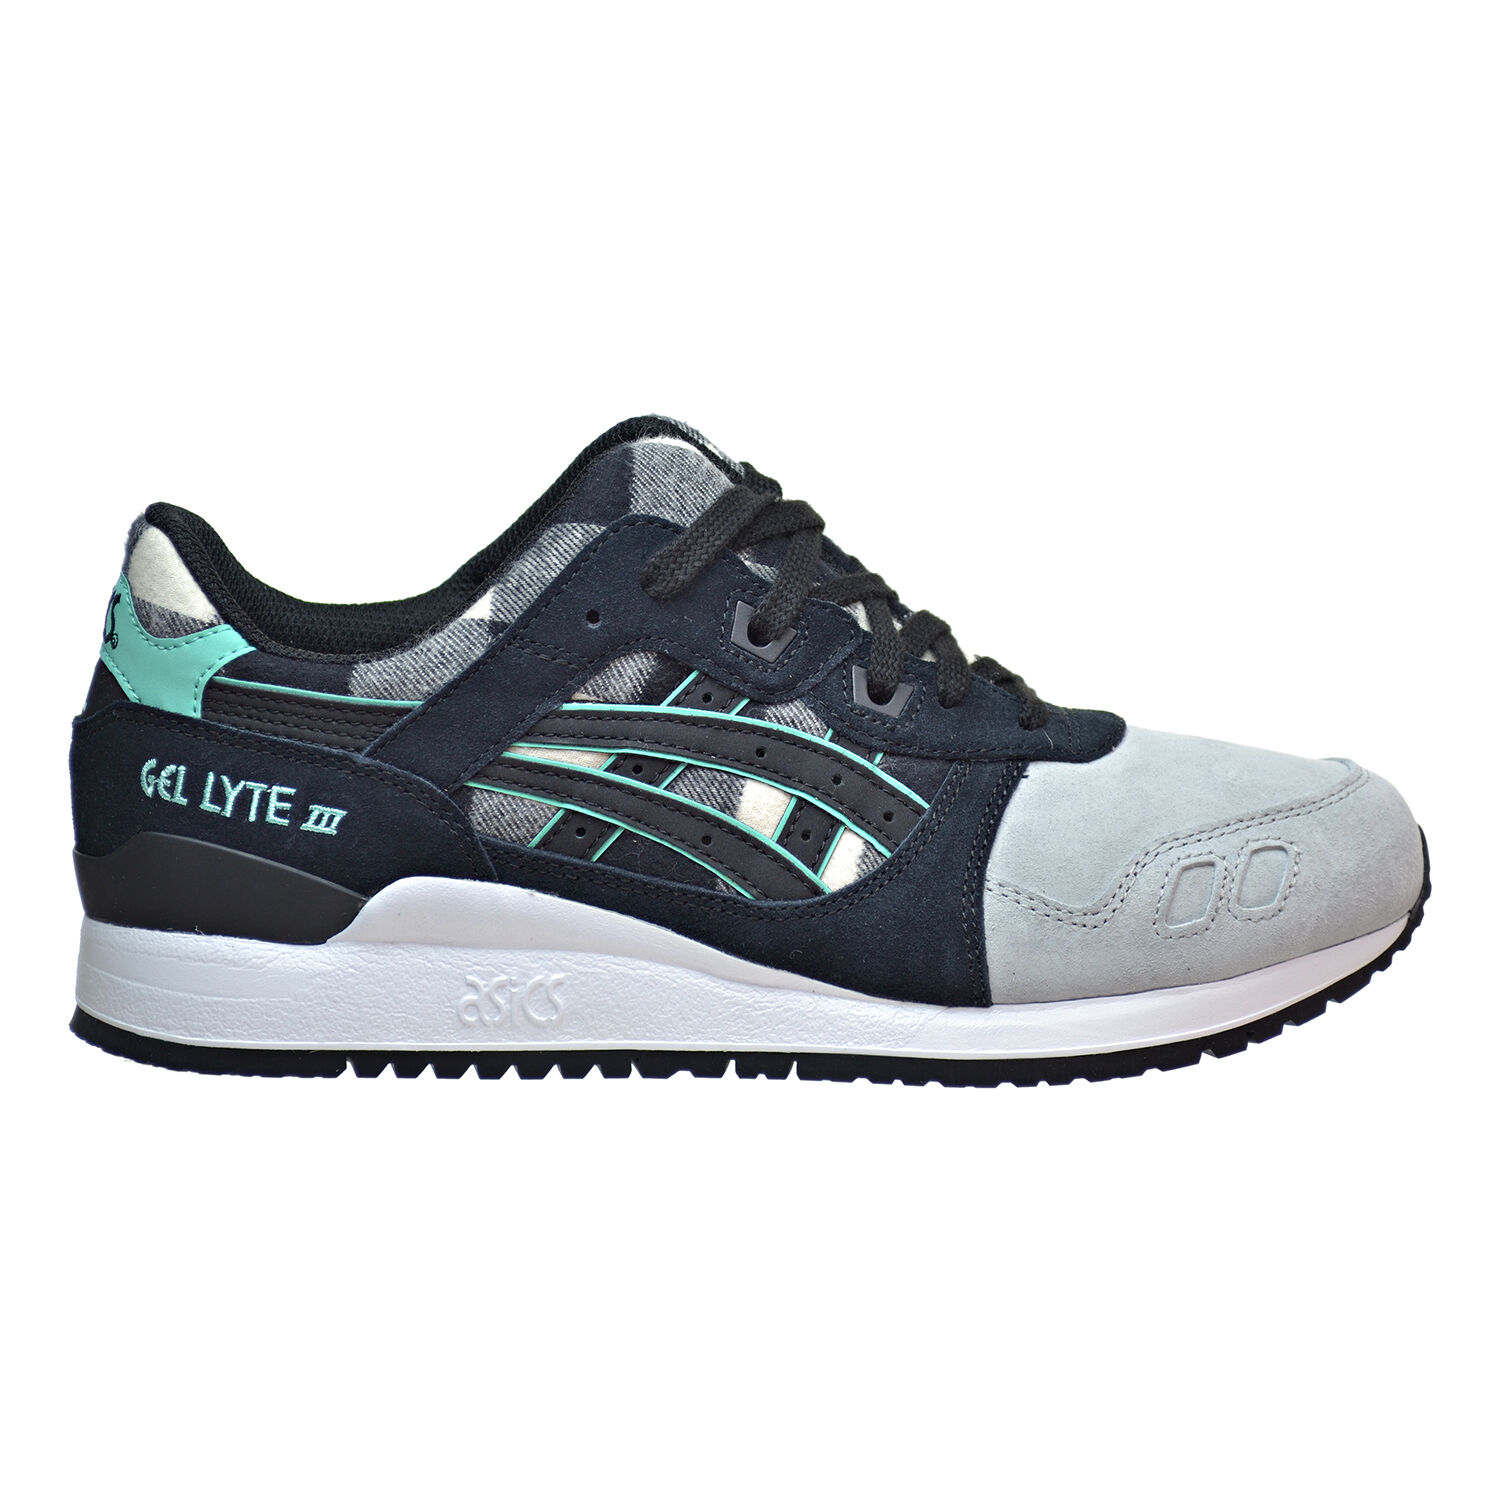 Asics Gel Lyte III Mens Shoes White/Black h6y0l-0190